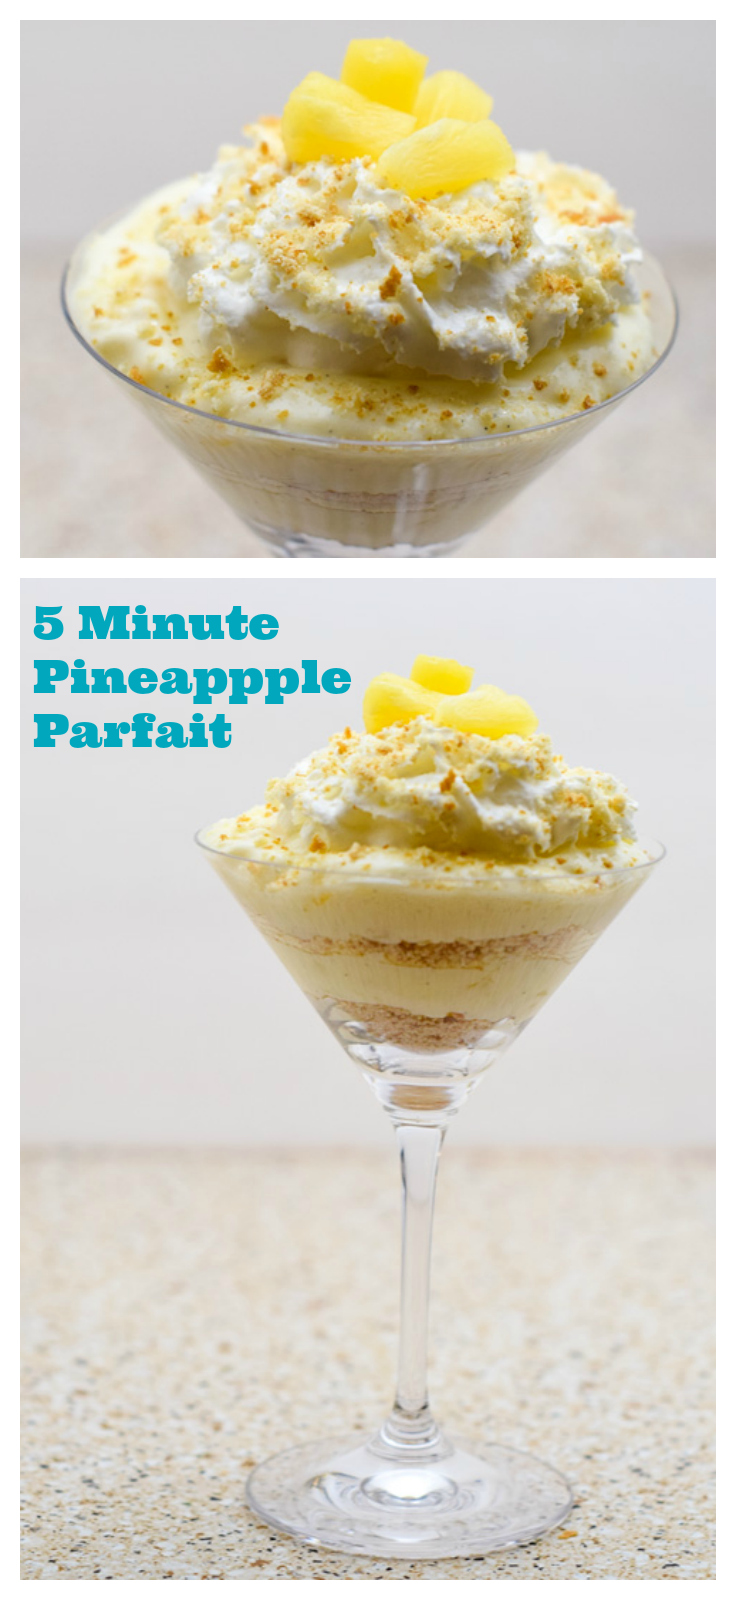 """A quick and easy dessert featuring healthy yogurt, pineapple, and cookie crumbs. Don't have time to make a healthy dessert or any dessert? There are no excuses now! This pineapple parfait only takes 5 minutes to make! Now that's a quick dessert! The recipe also comes with a free """"Do Not Disturb / Pampering In Progress"""" door knob hanger so you can eat your dessert in peace! #MullerMoment #CollectiveBias #ad #pineapple #quick #easy #desserts #yogurt"""